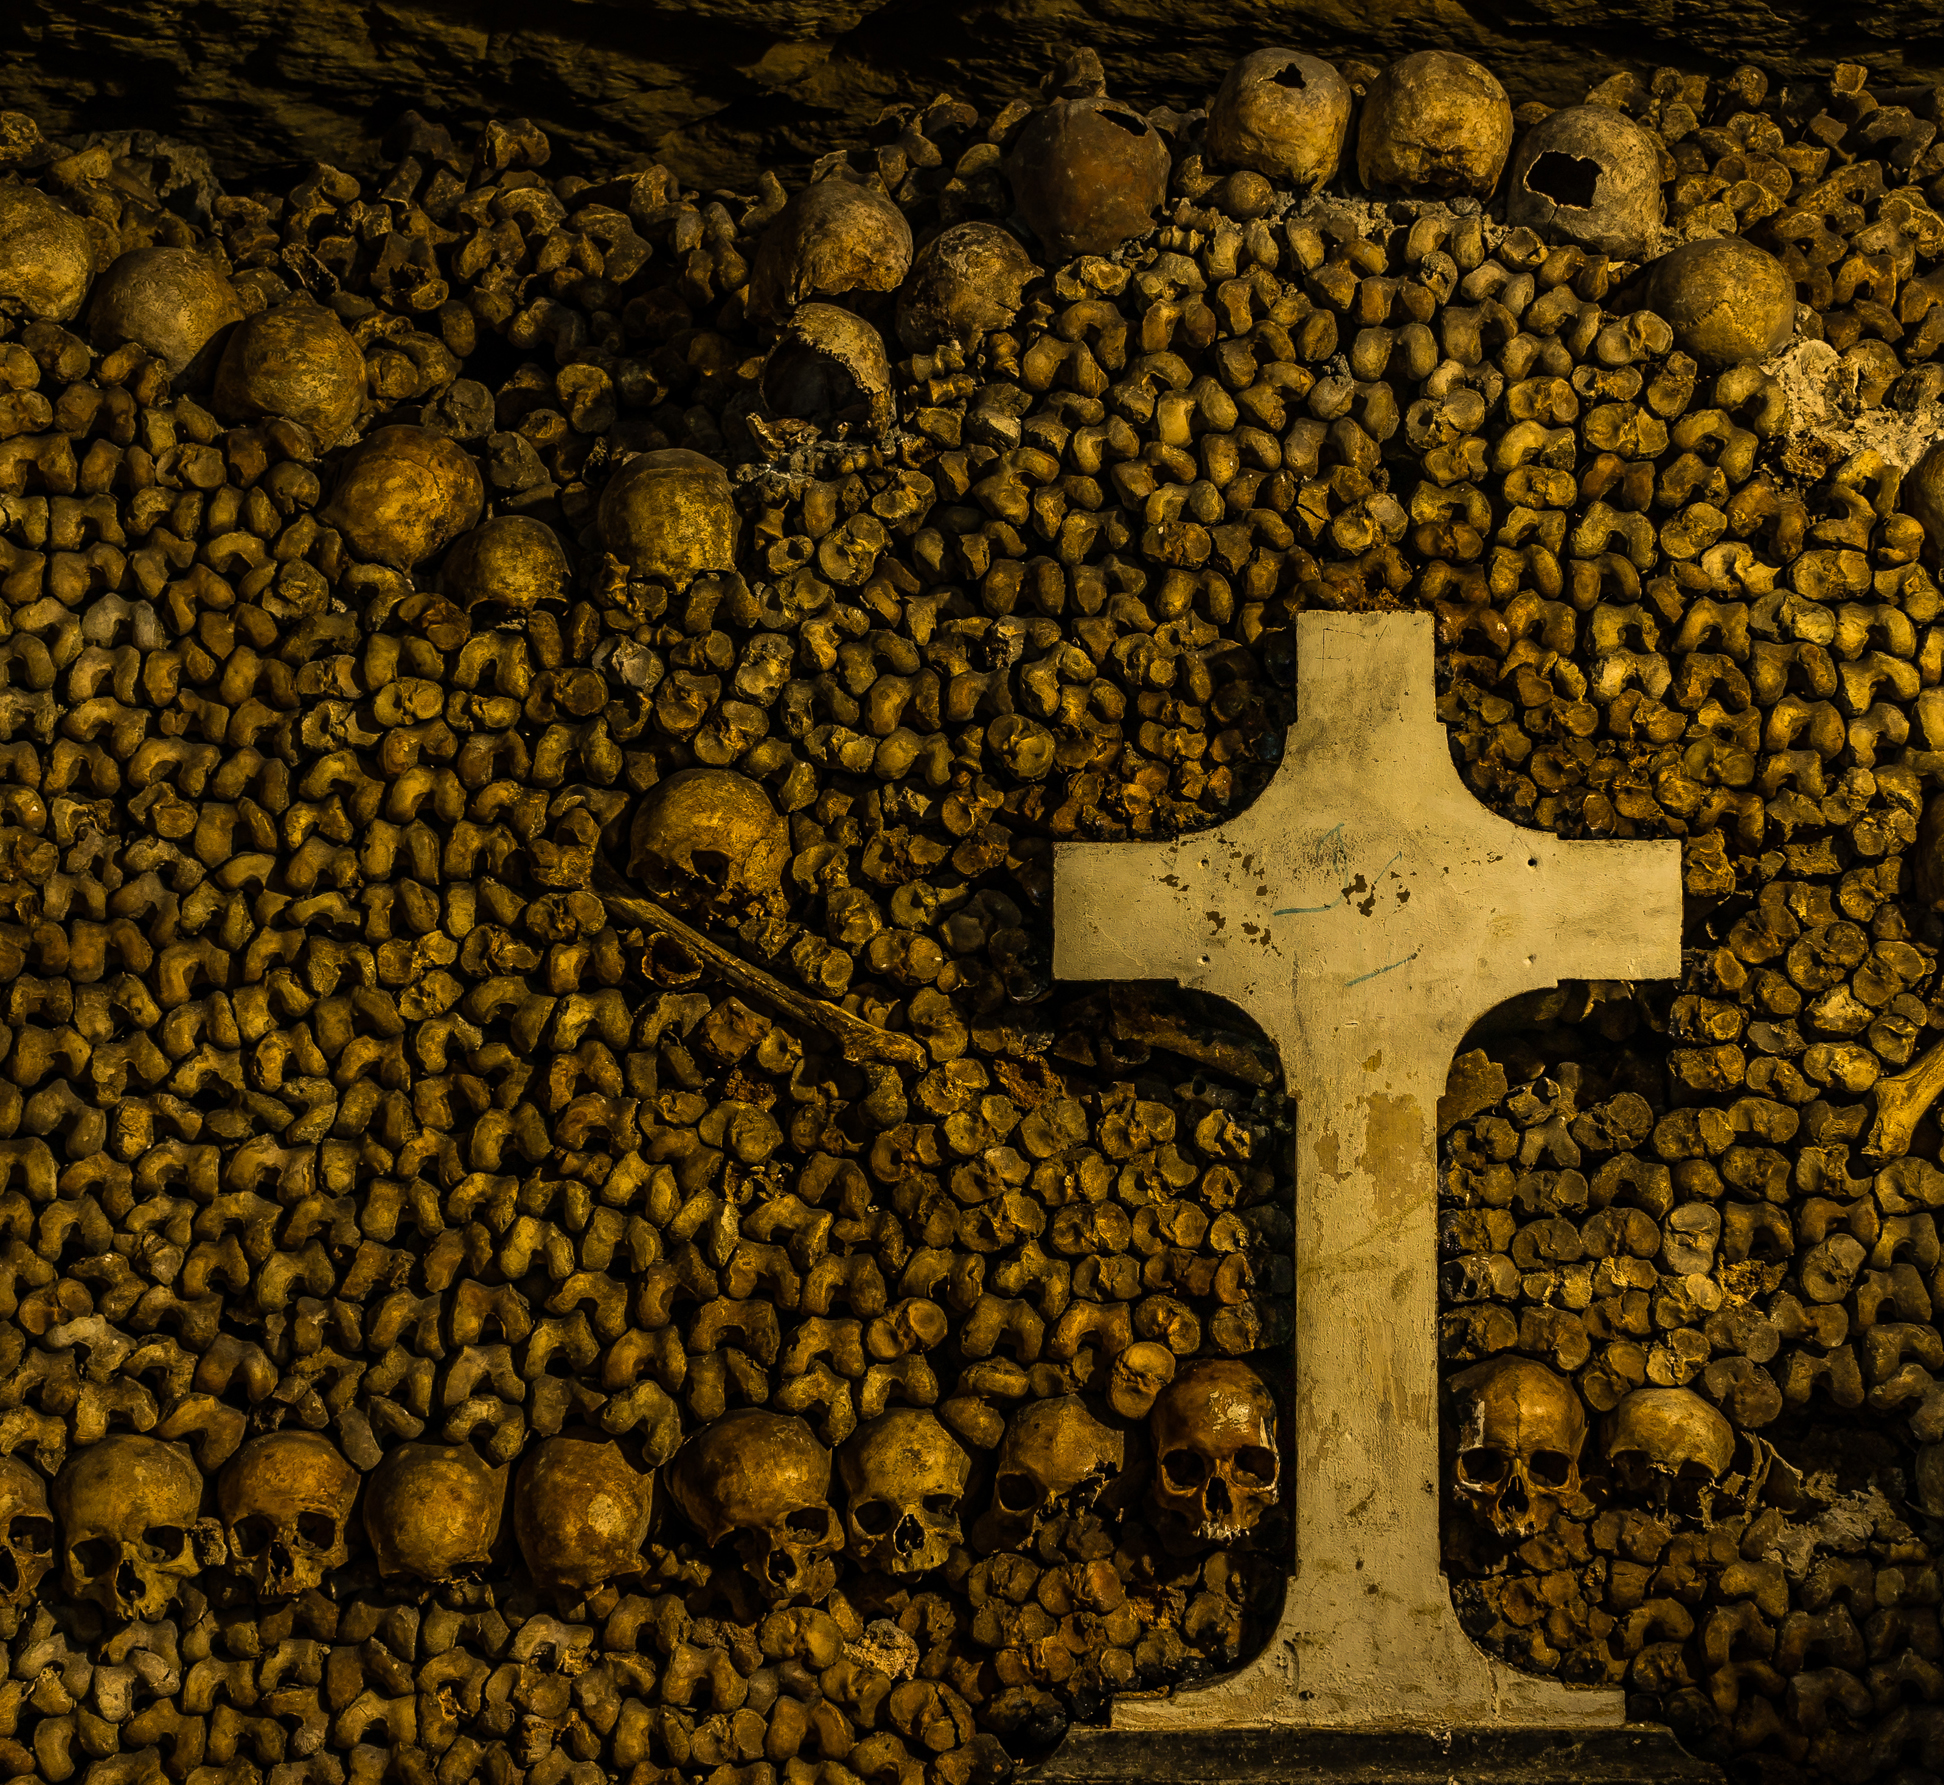 Paris Catacombs : WikiPedia